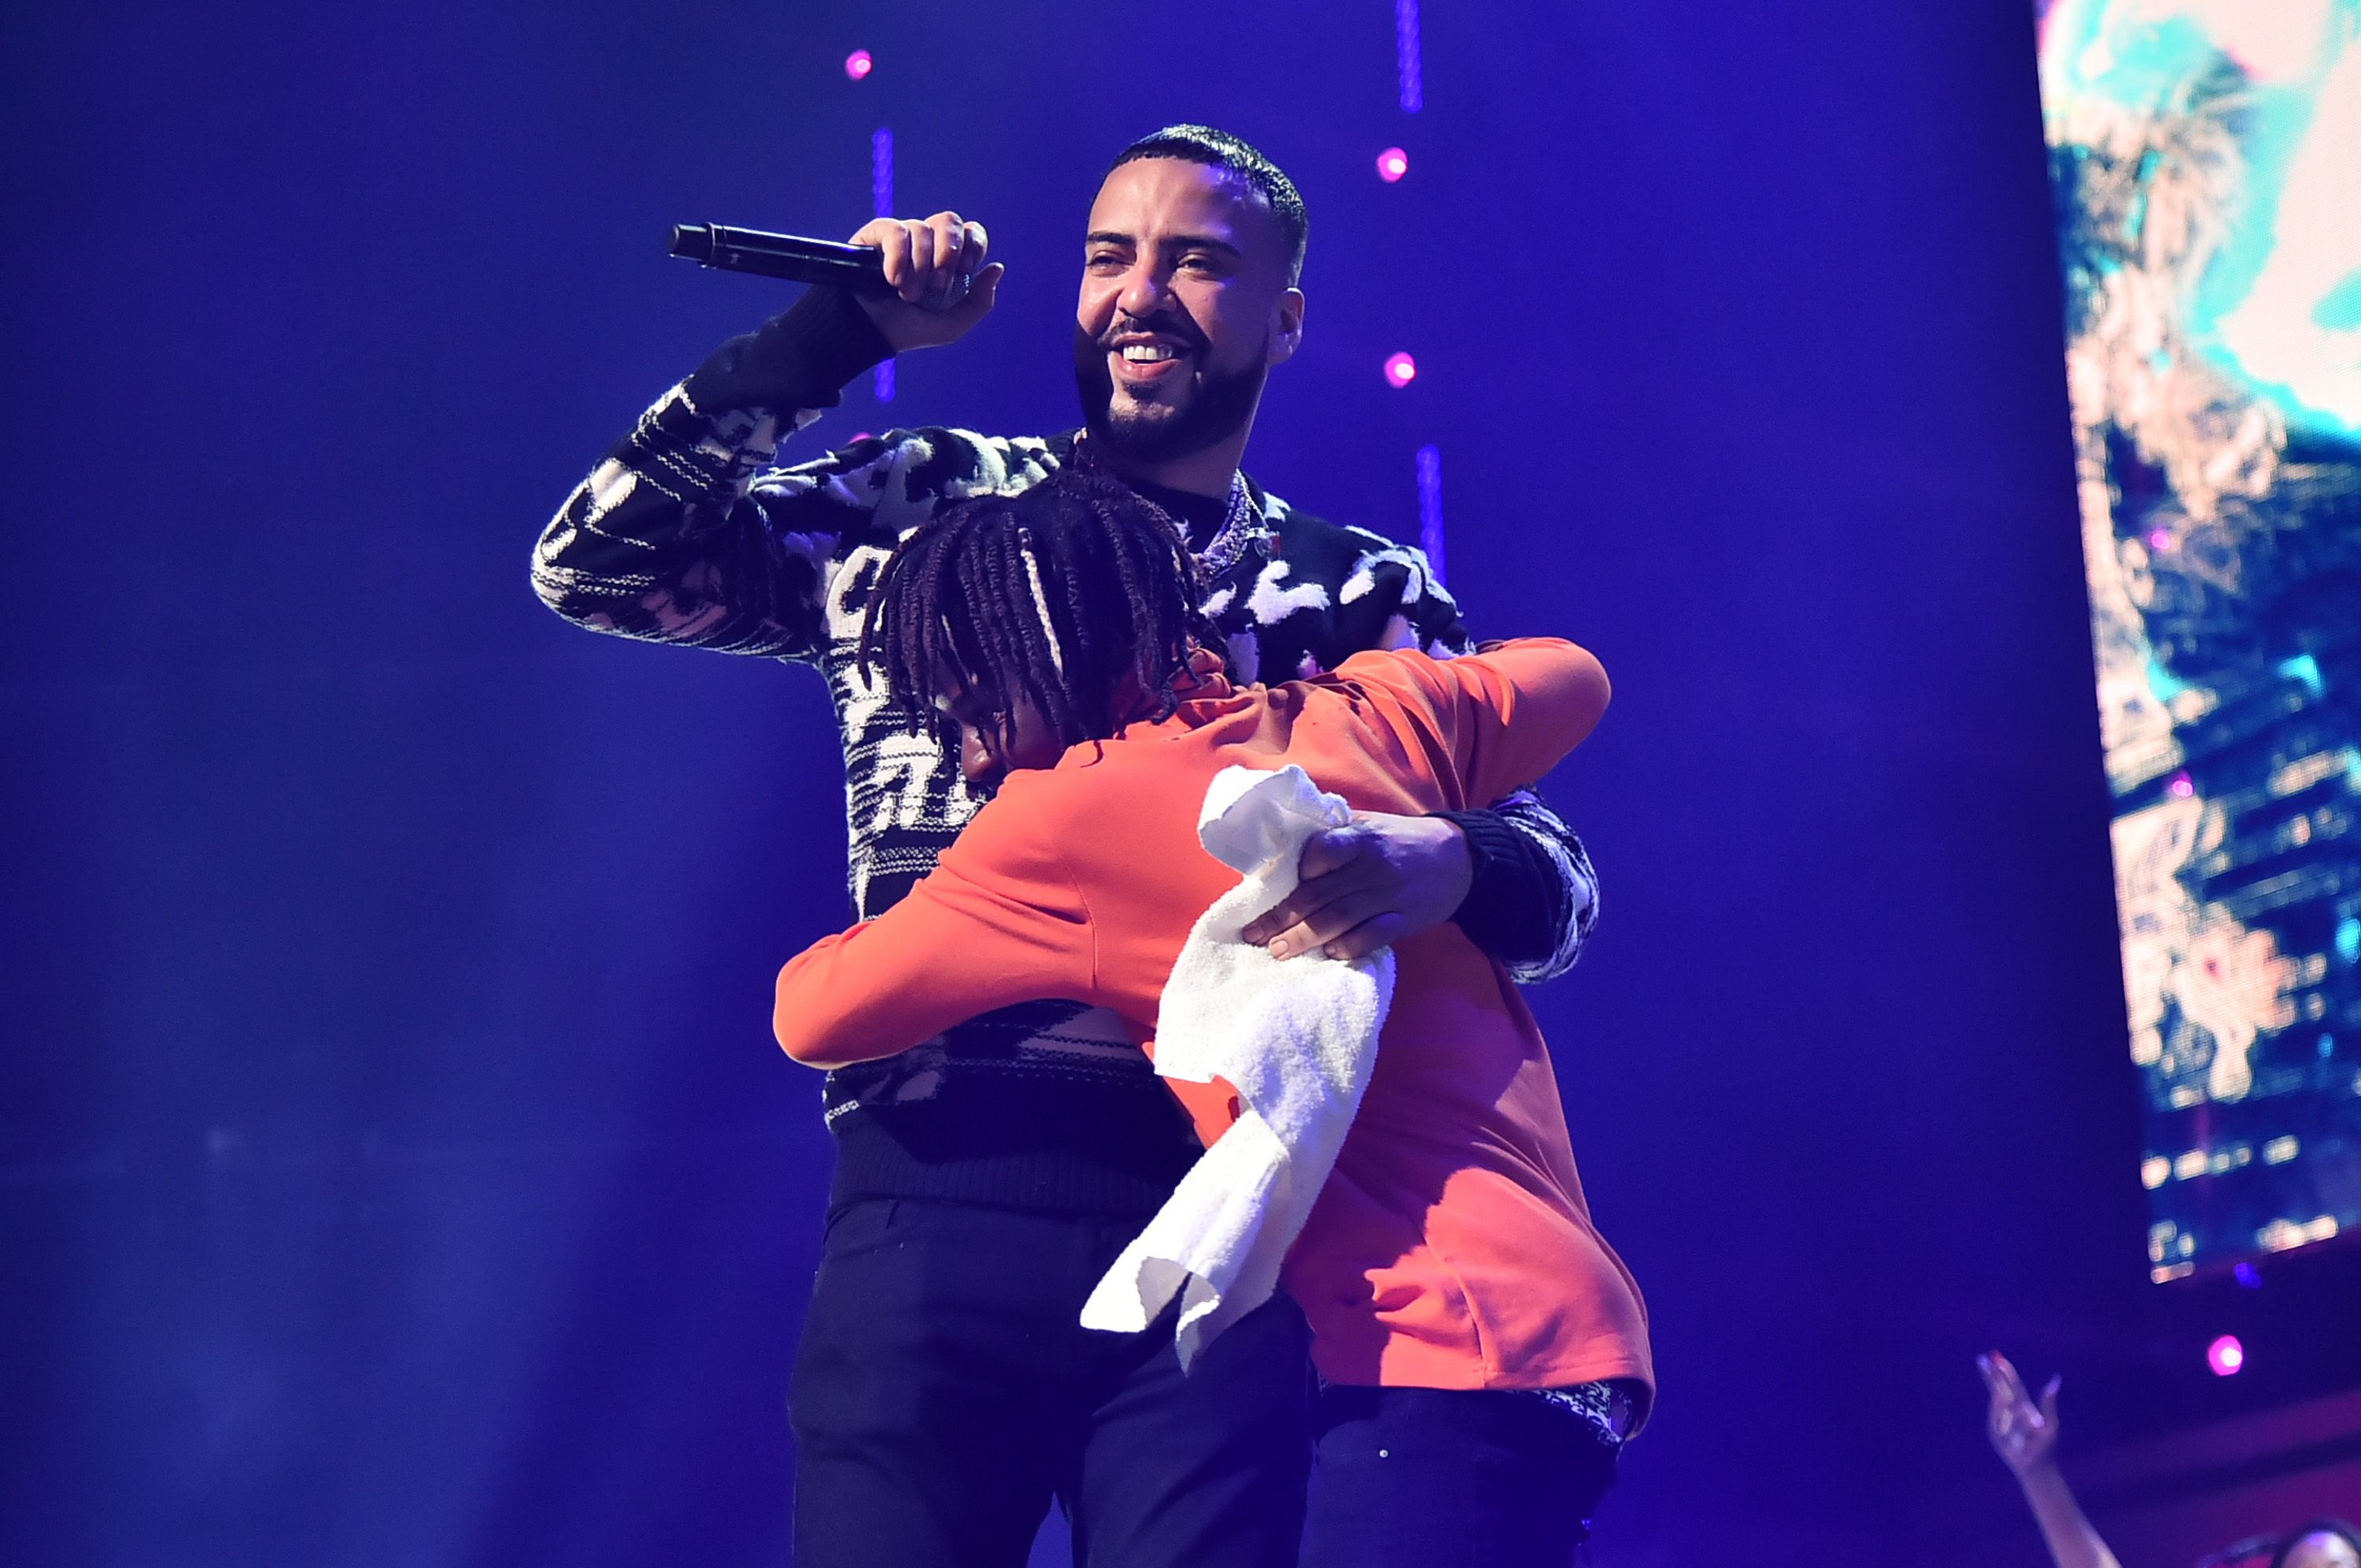 French Montana Hugging Someone on stage